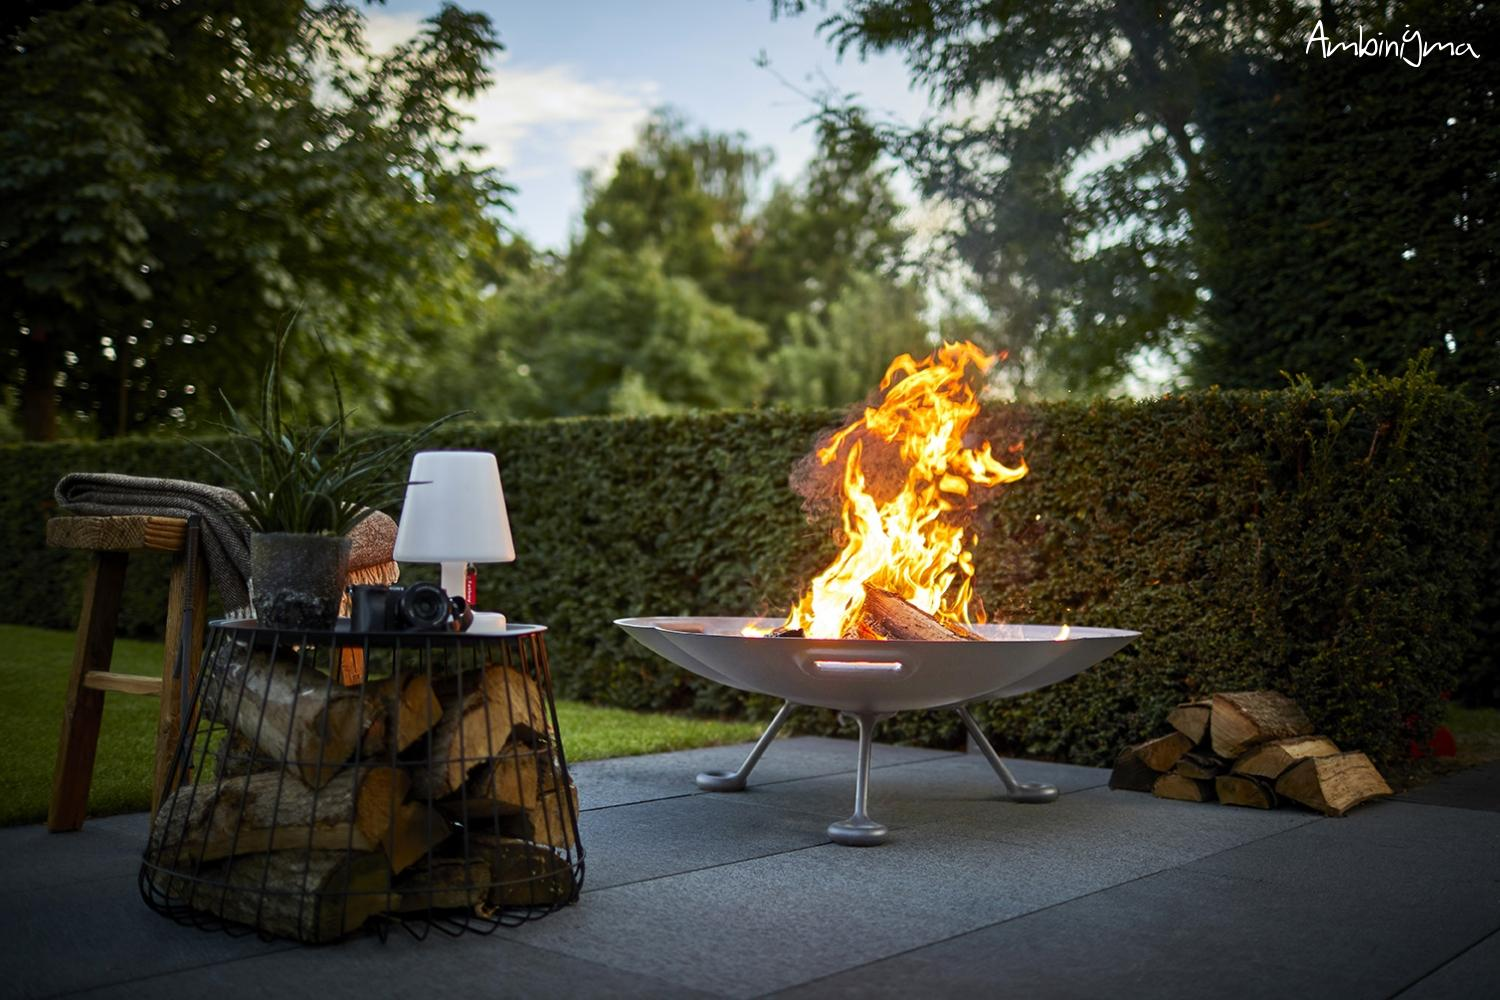 Fire Pit exterior a Lenha  Modelo RB73 lotus HIGHT